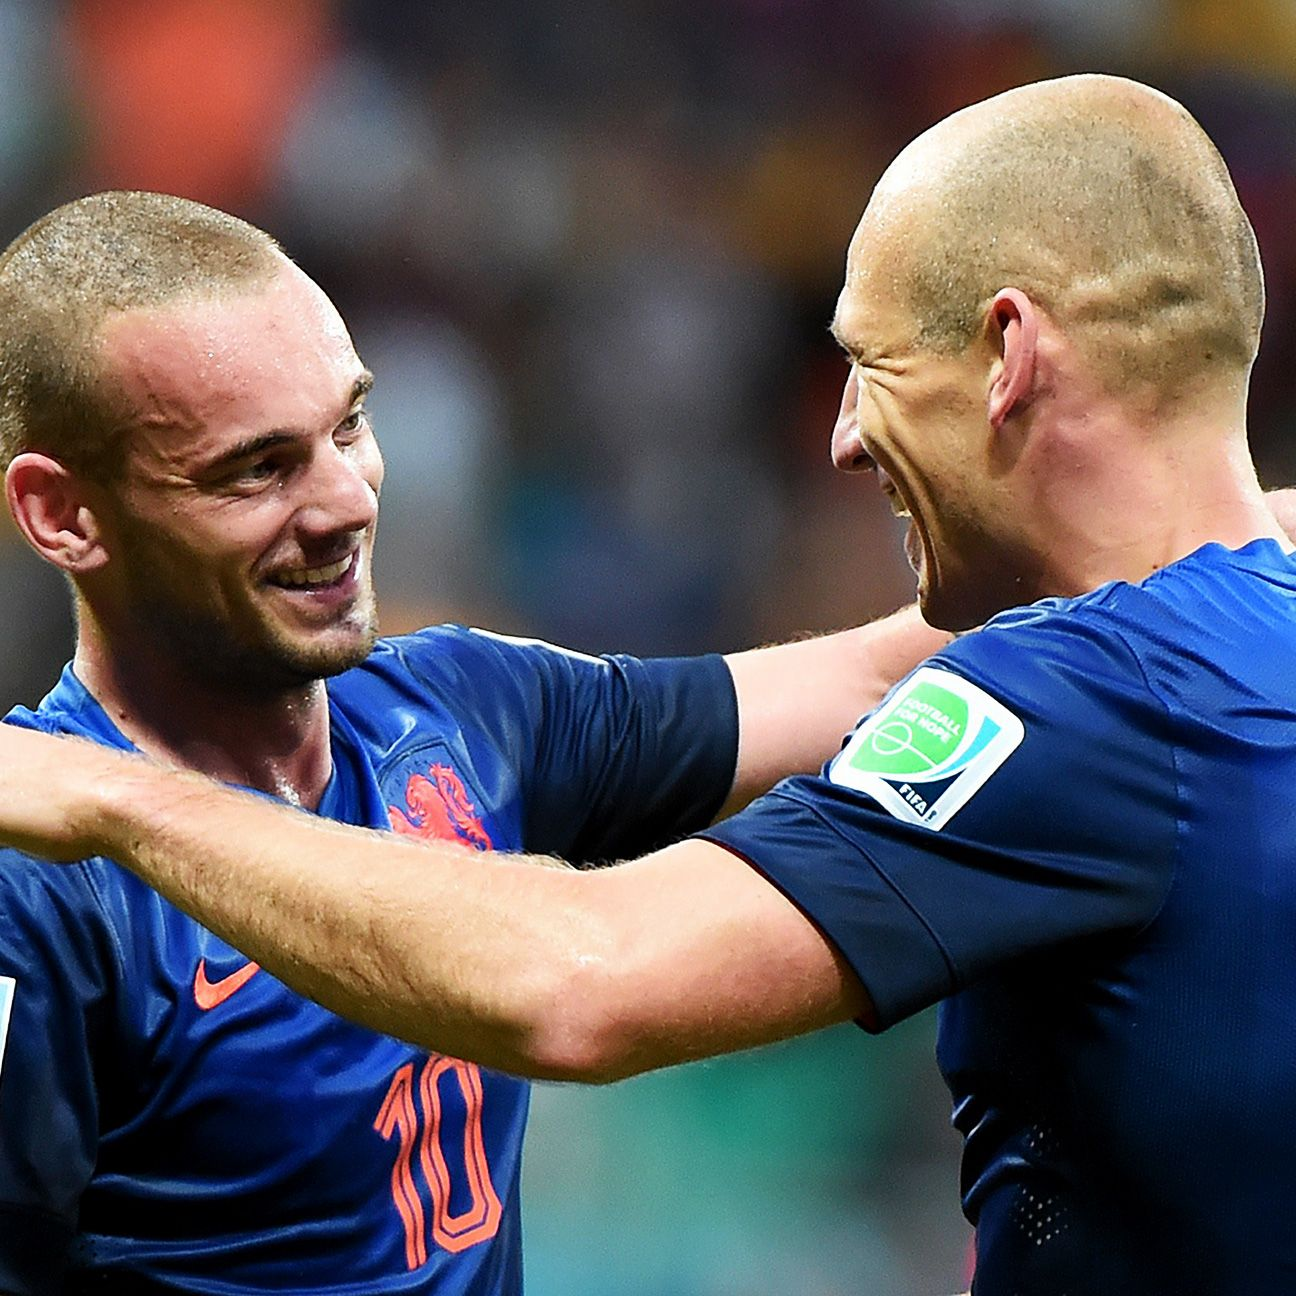 Wesley Sneijder and Arjen Robben were present for the pain of the 2010 final, making Friday's victory all the sweeter.